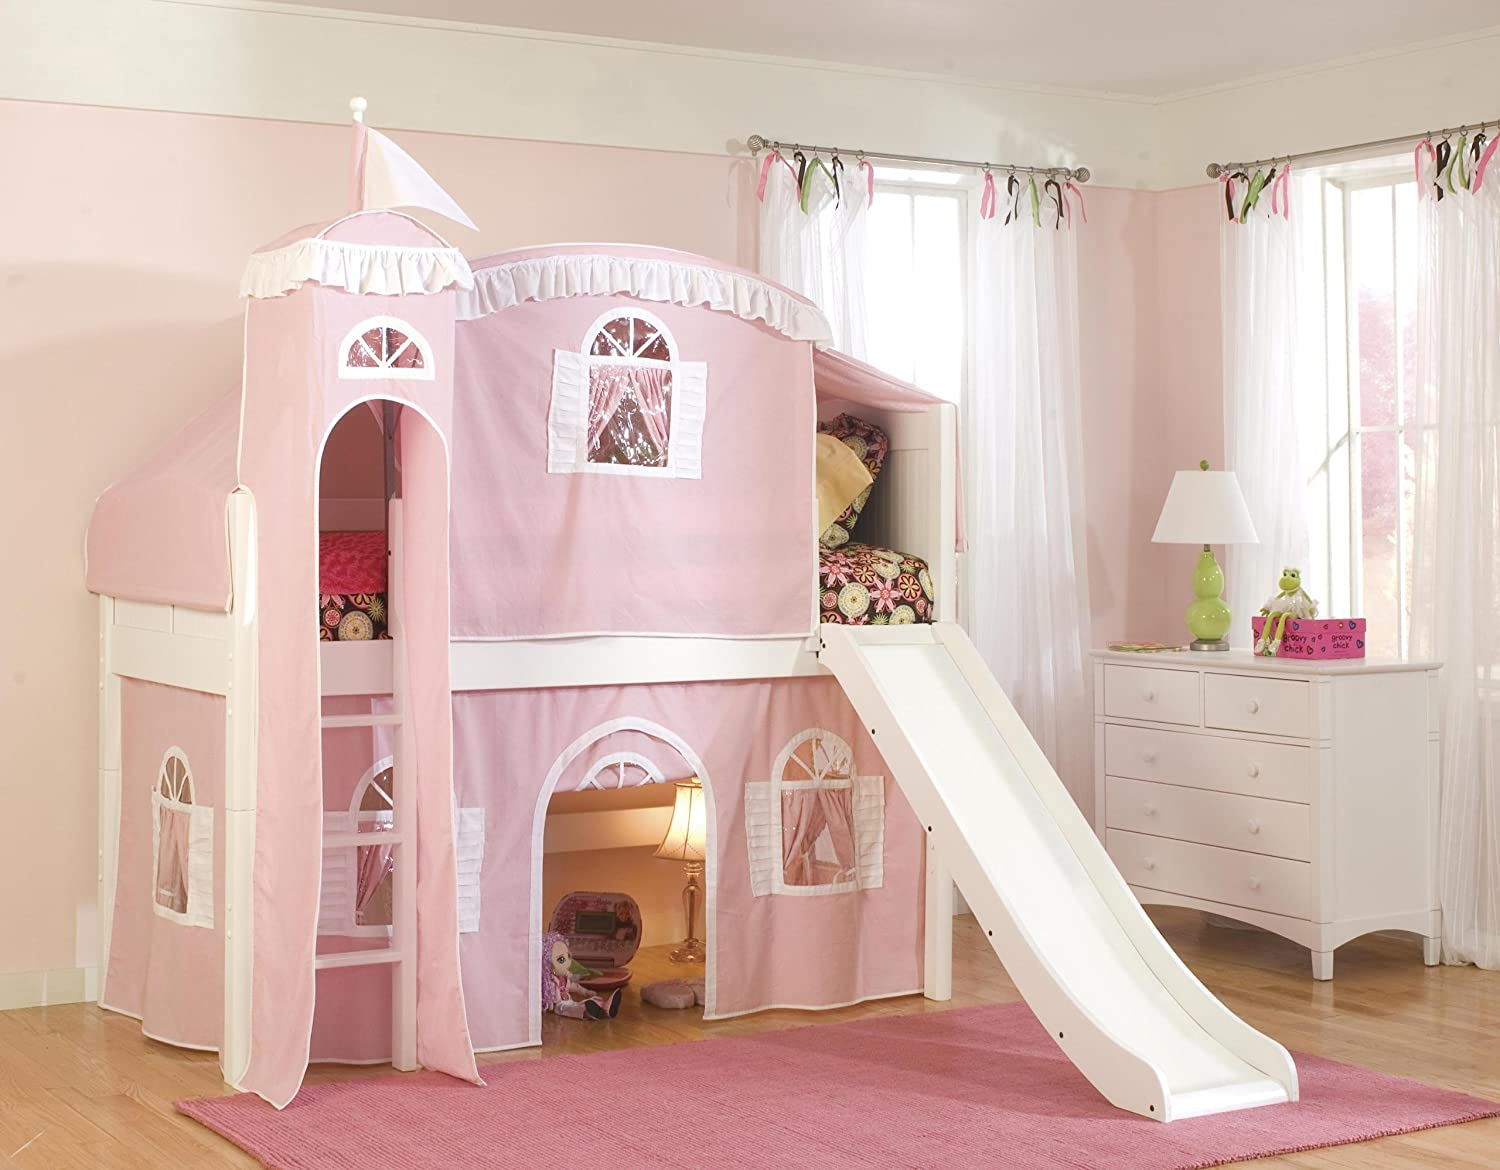 Amazon Bolton Furniture 9811500LT6PW Cottage Low Loft Castle Bed White With Pink Top Tent Bottom Playhouse Curtain Tower And Slide Kitchen